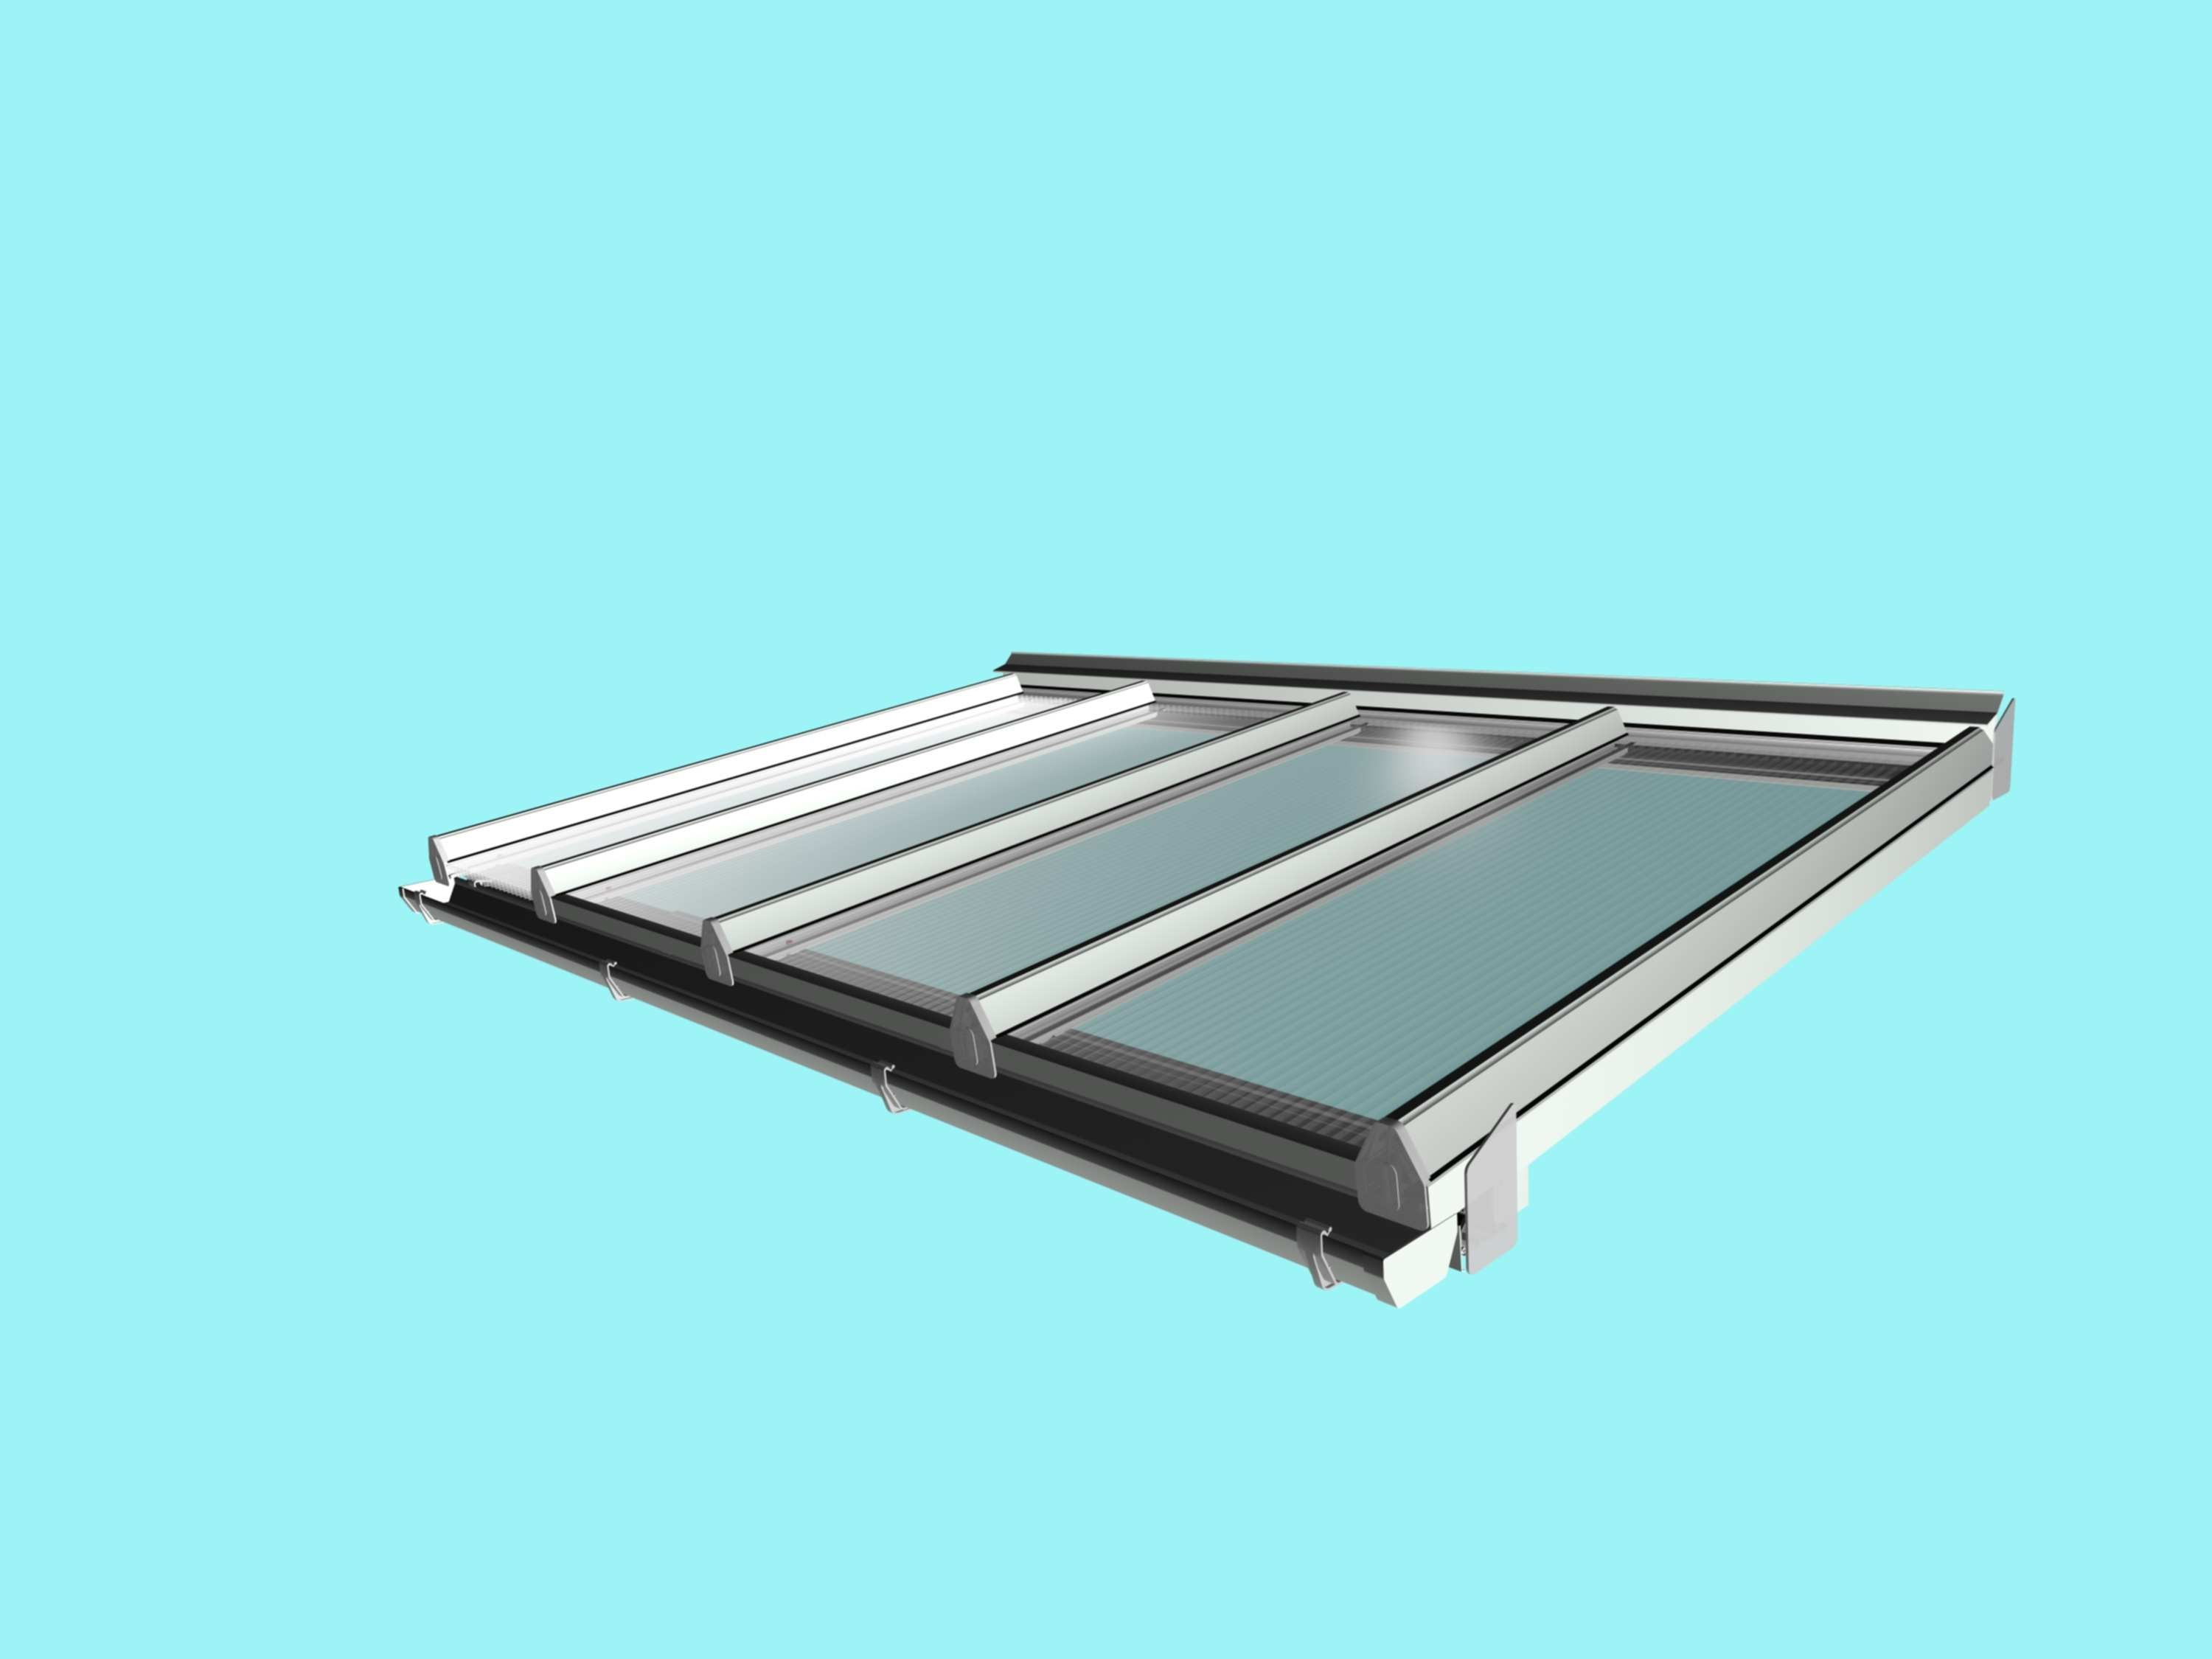 Self Supporting Diy Conservatory Roof Kit For 16mm Polycarbonate 4 0m Wide X 2 5m Projection From Omega Build Diy Conservatory Conservatory Roof Clear Glass